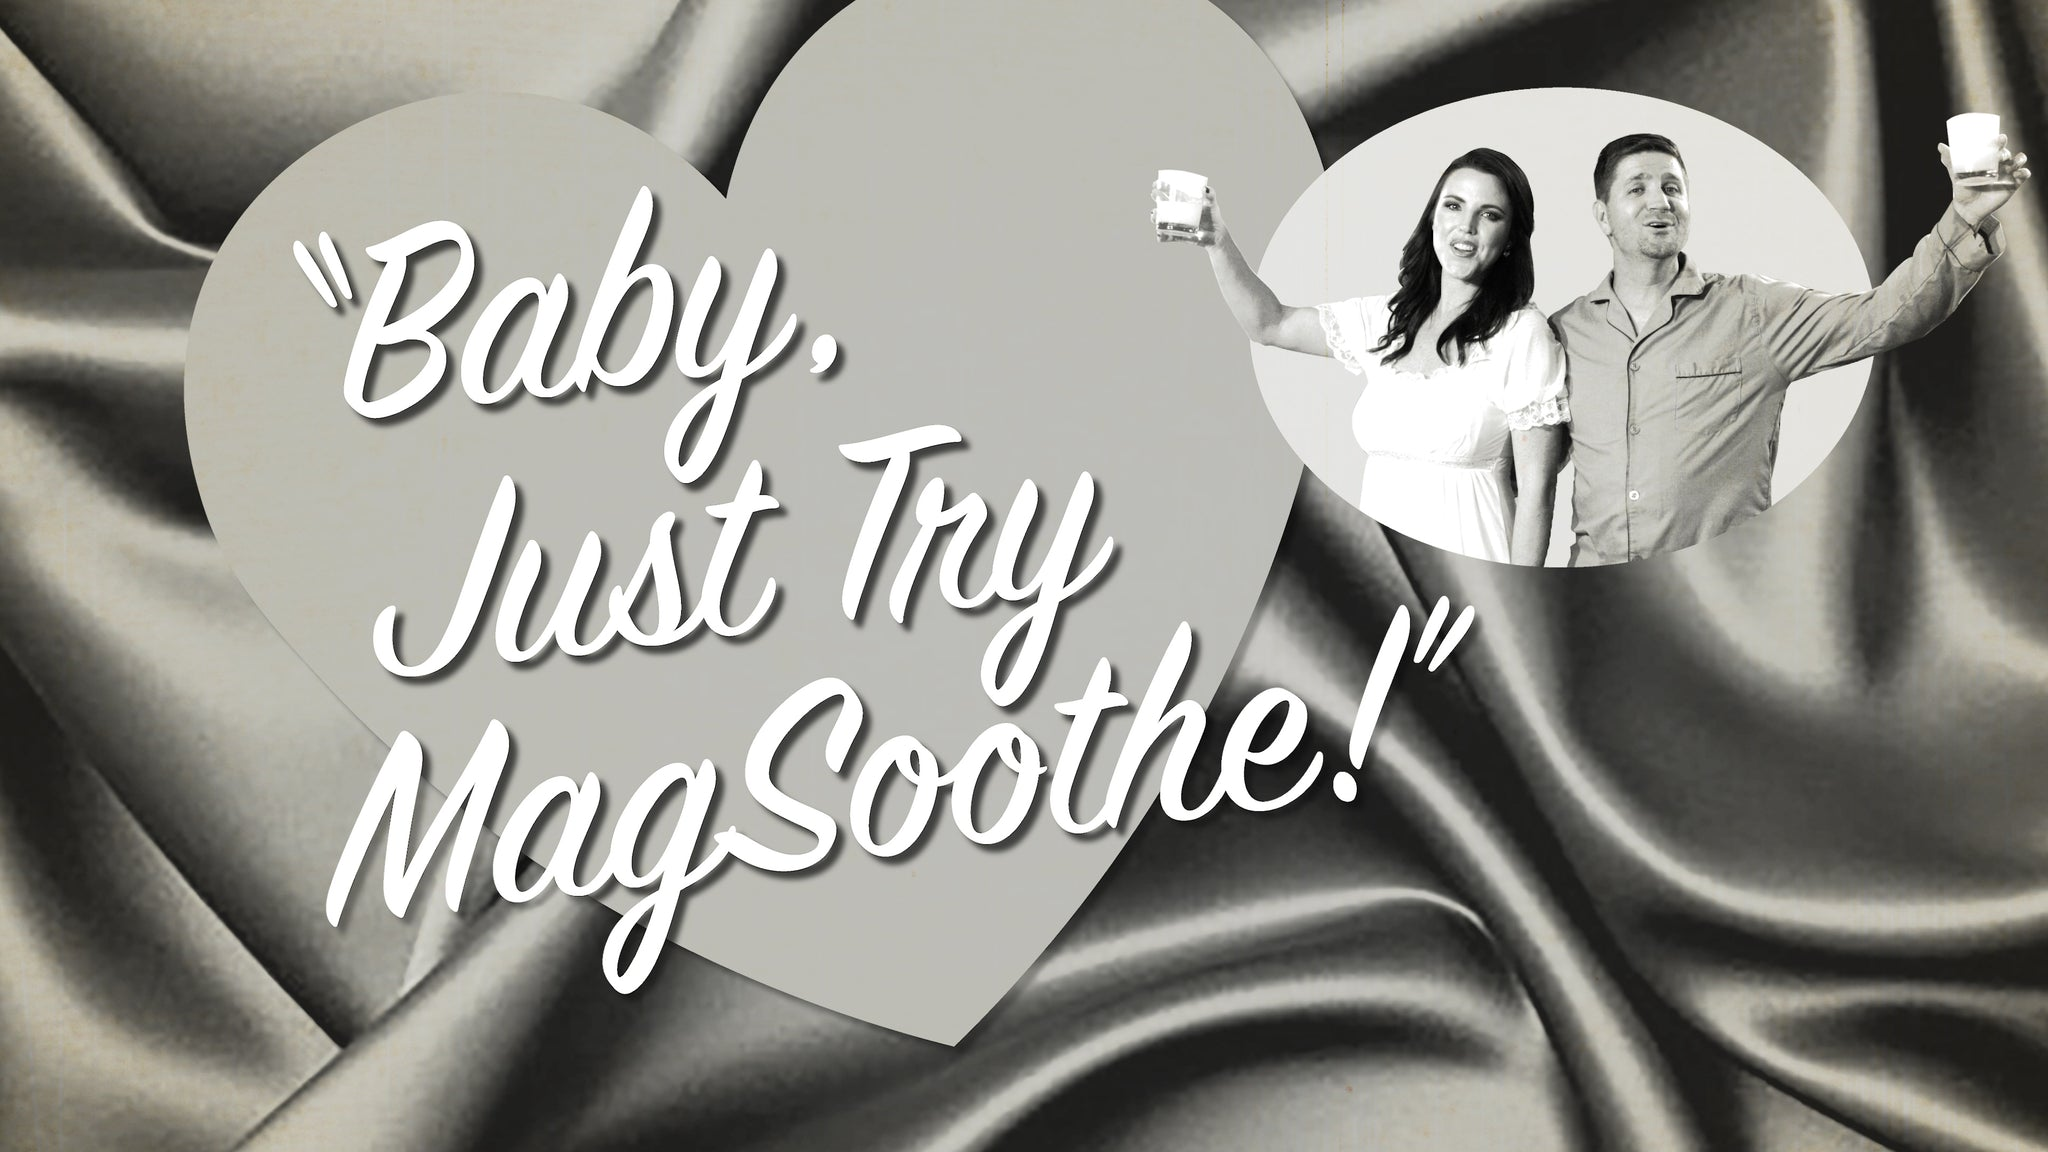 Baby Just Try MagSoothe [Musical Parody] | #FunnyFriday